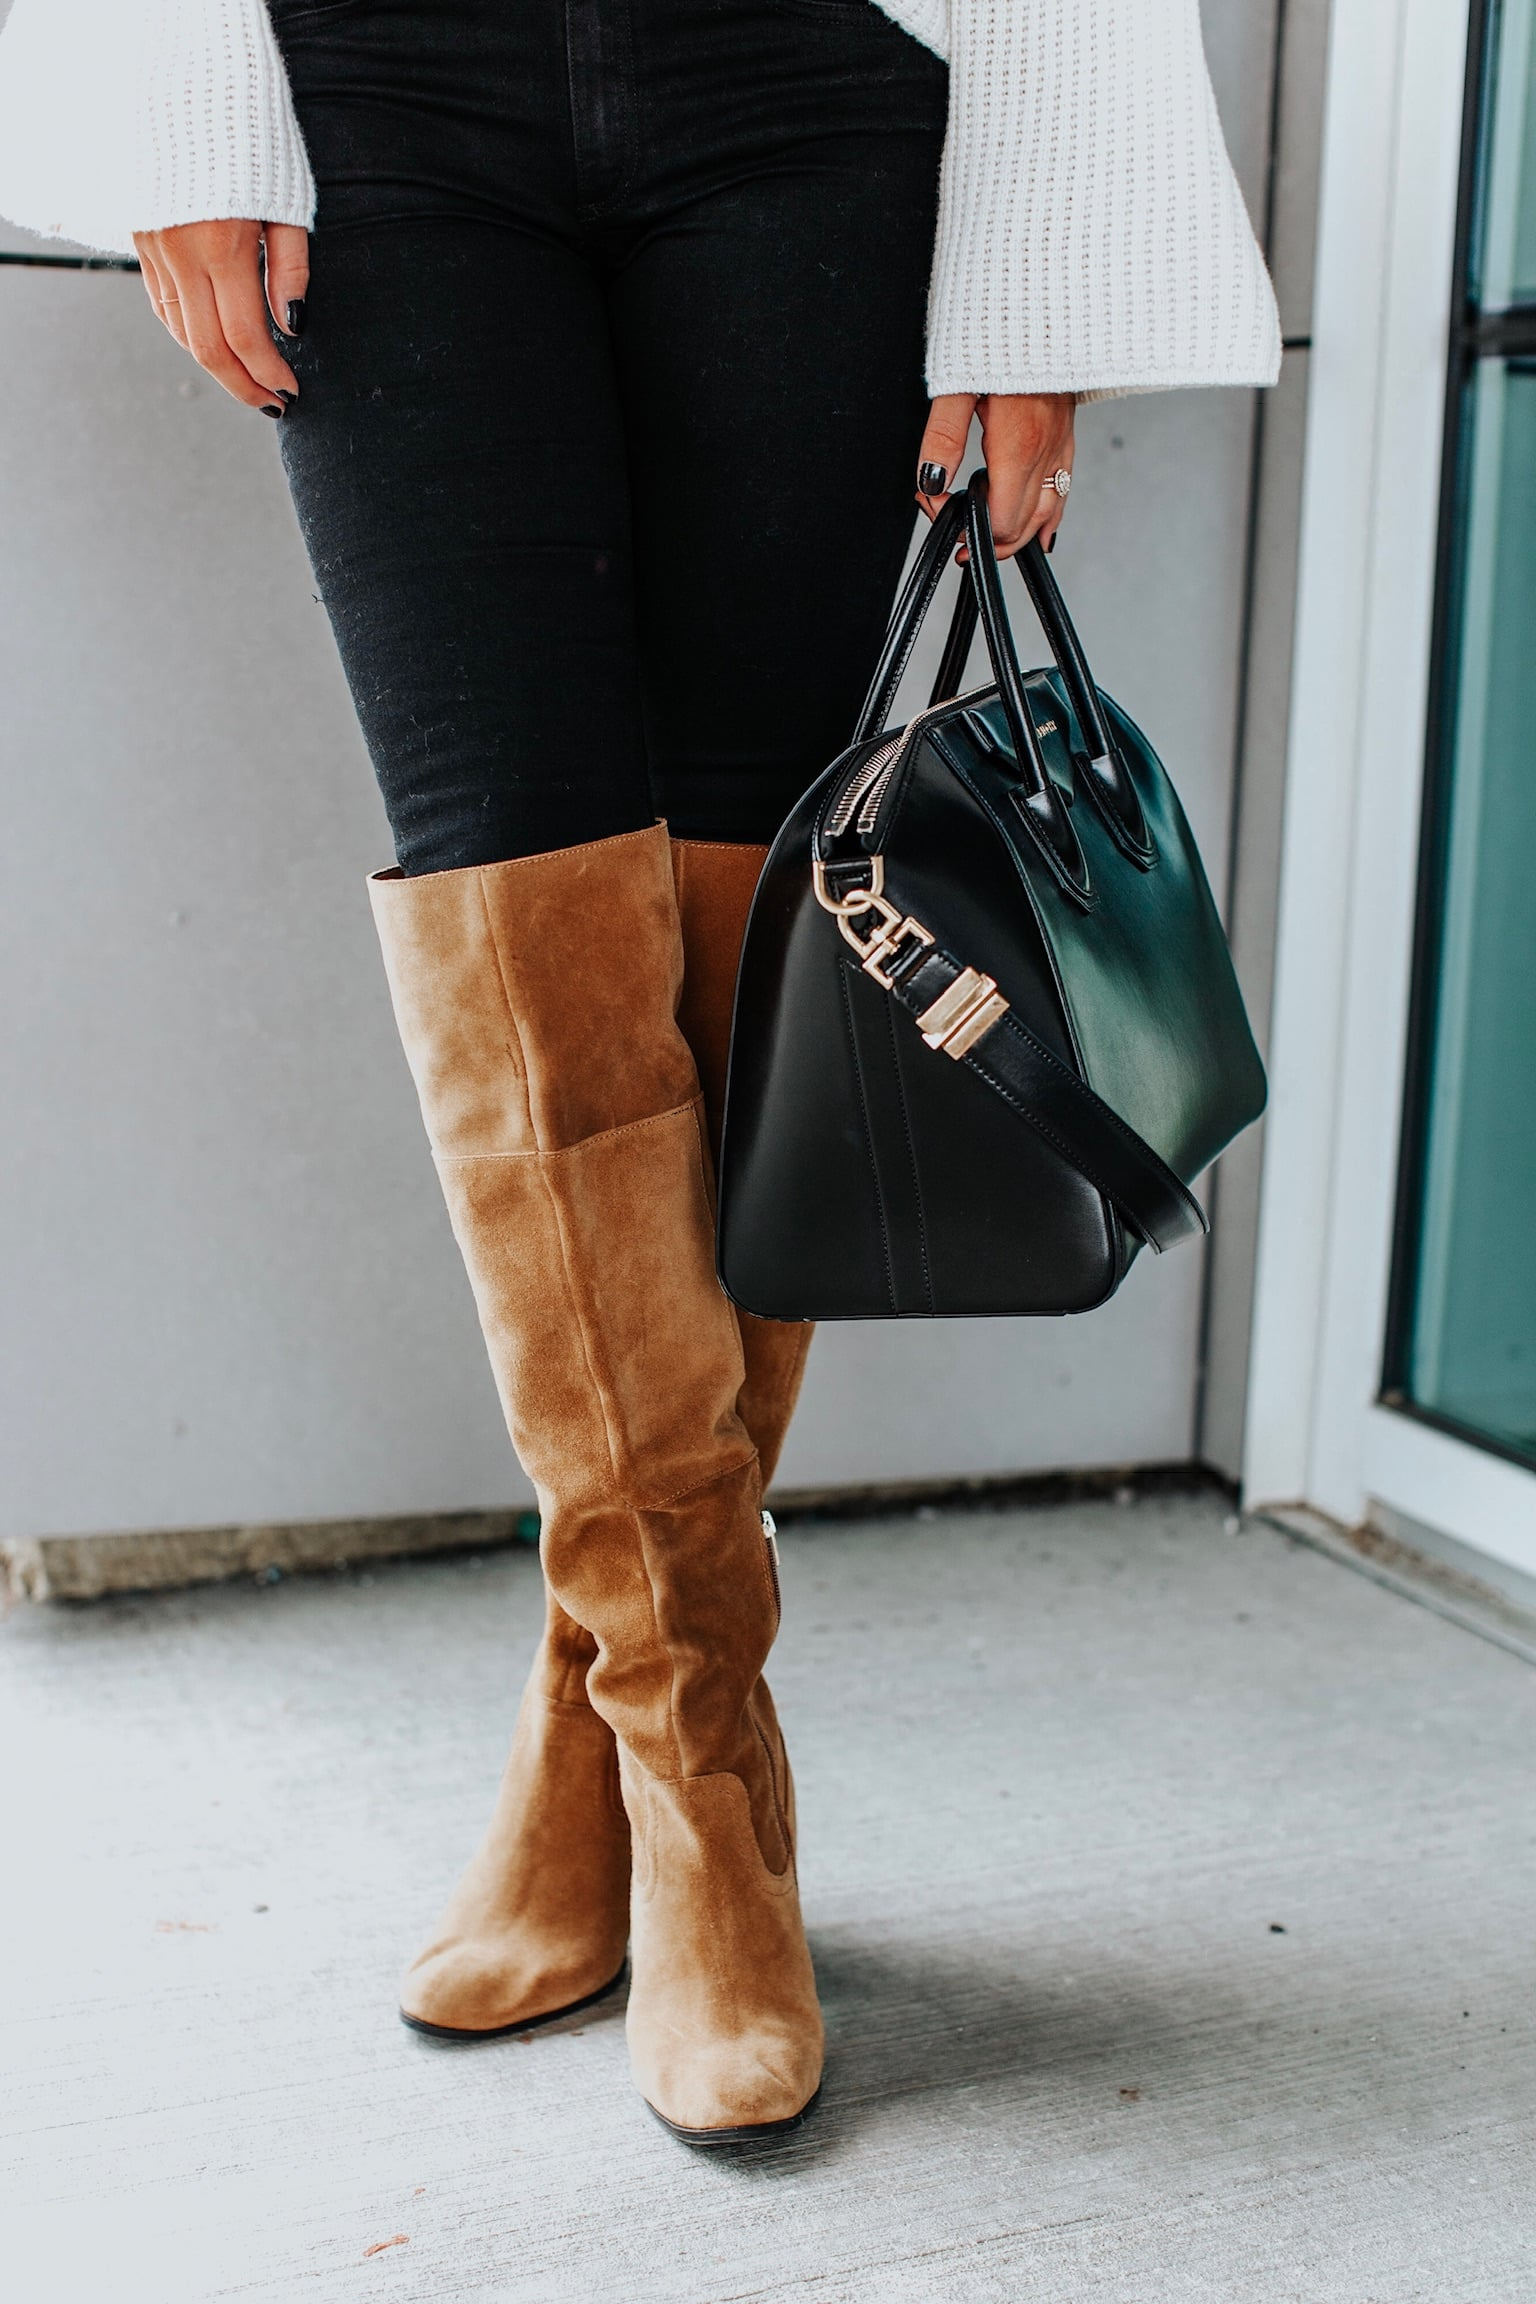 1 person, tan over the knee boots and givenchy antigona bag